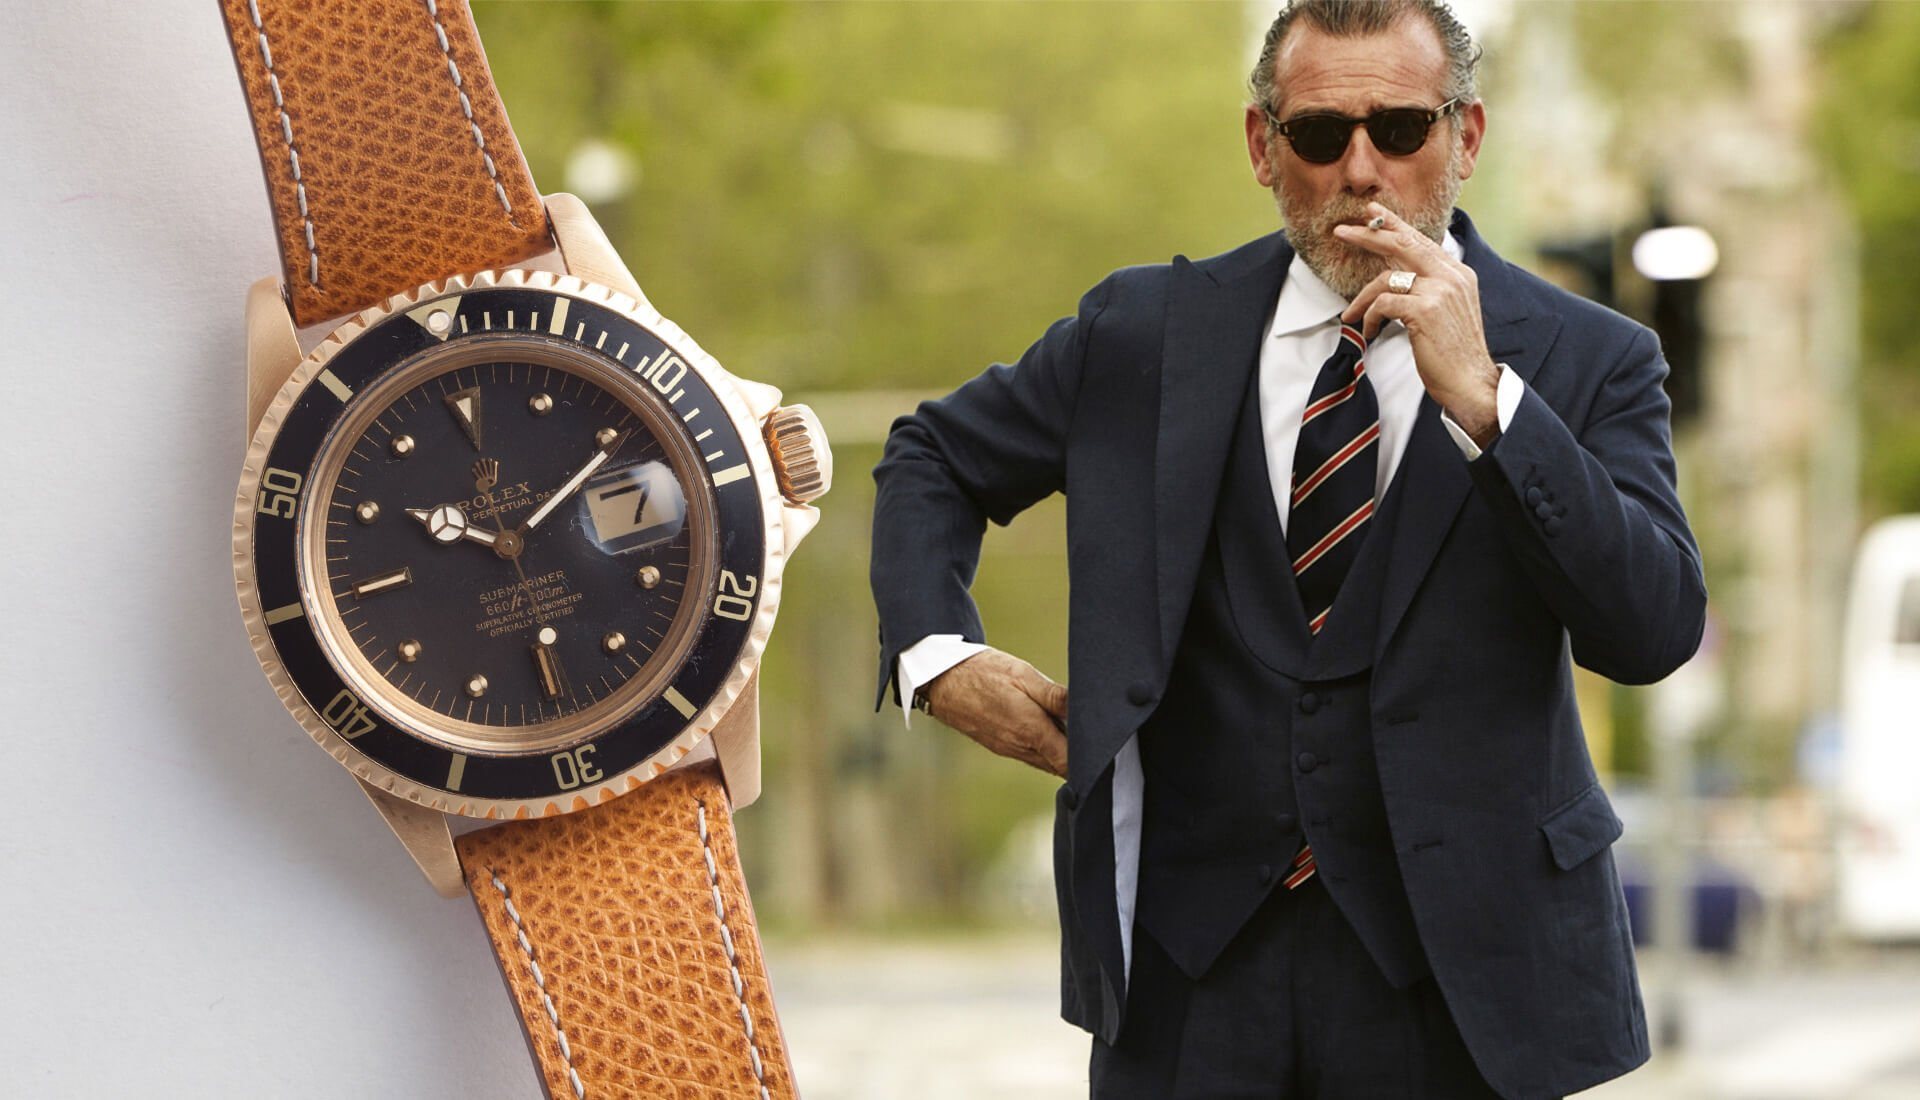 Watch 101: Can You Wear a Dive Watch With a Suit?